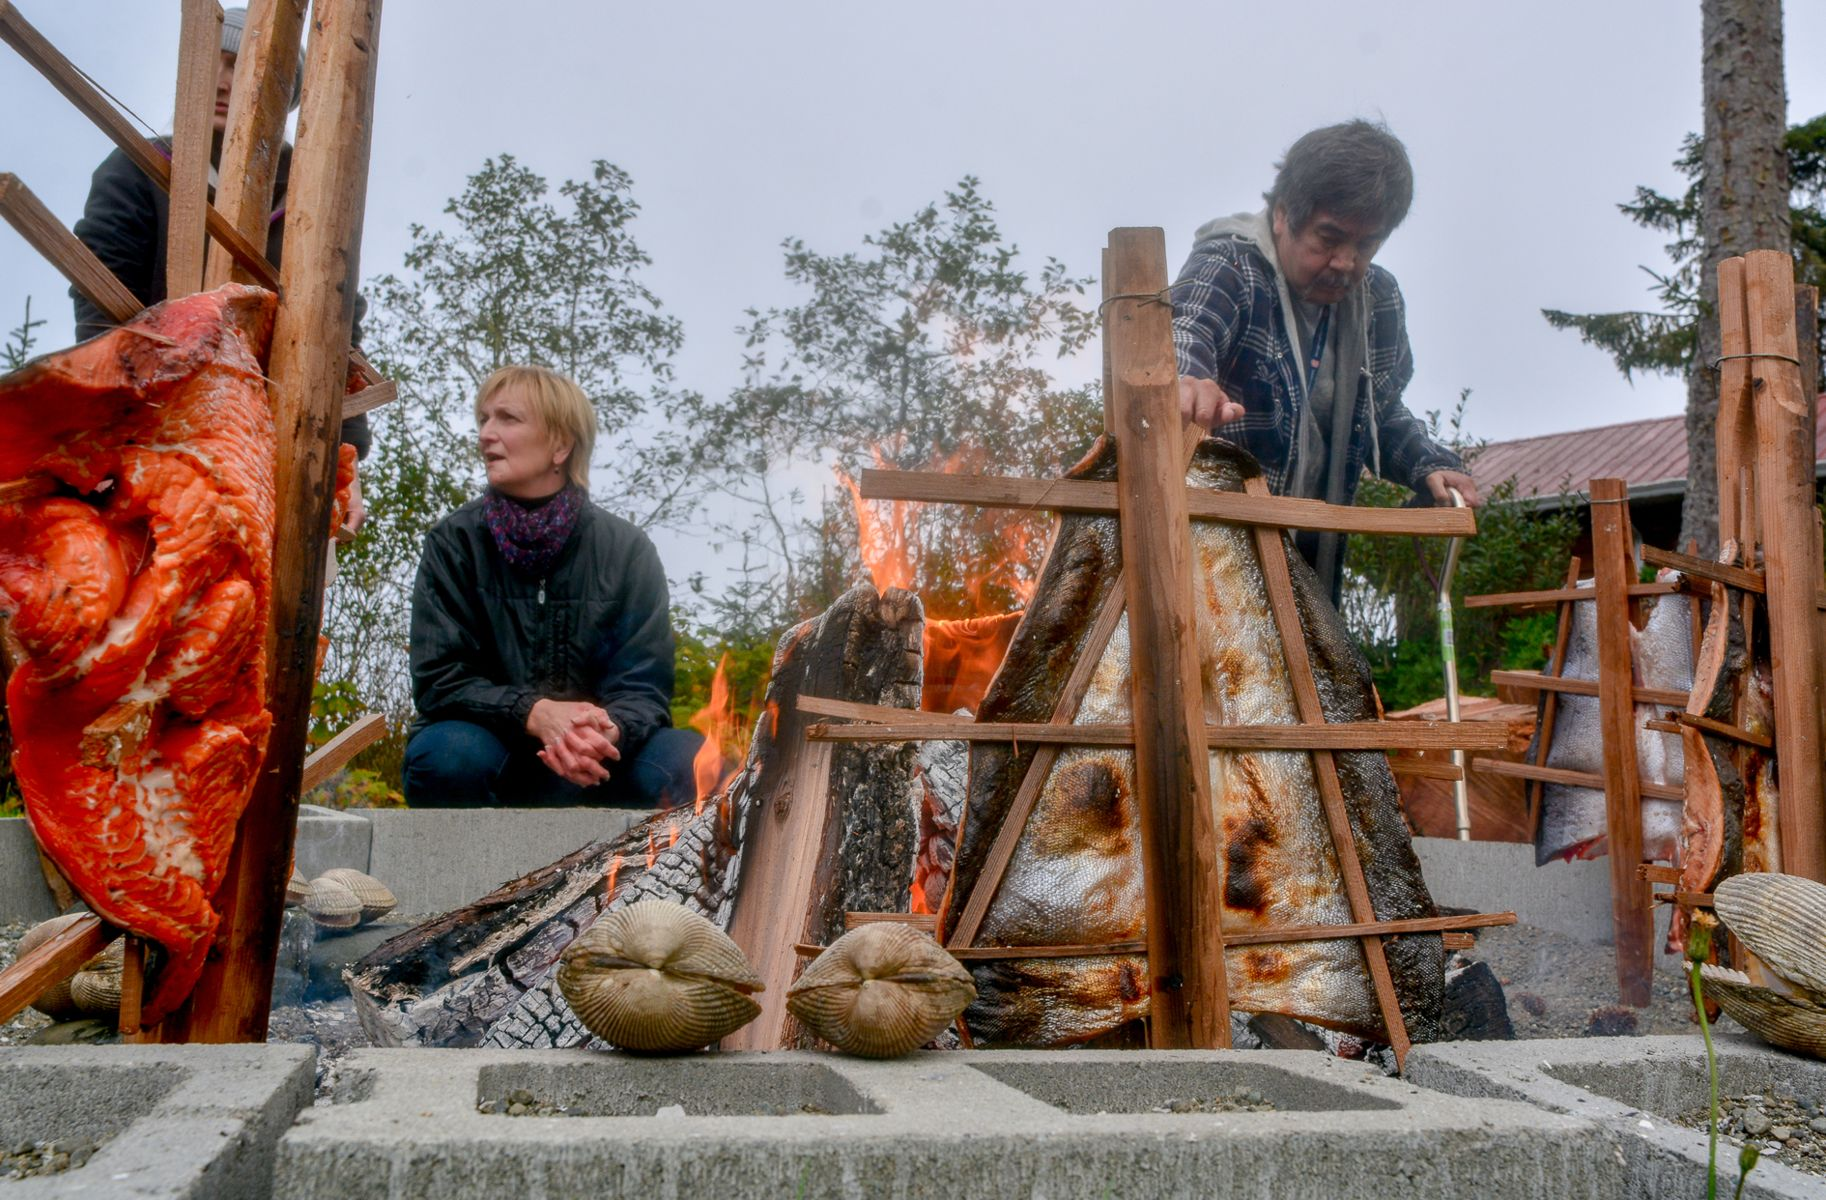 Two people prepare food outdoors over open fires.